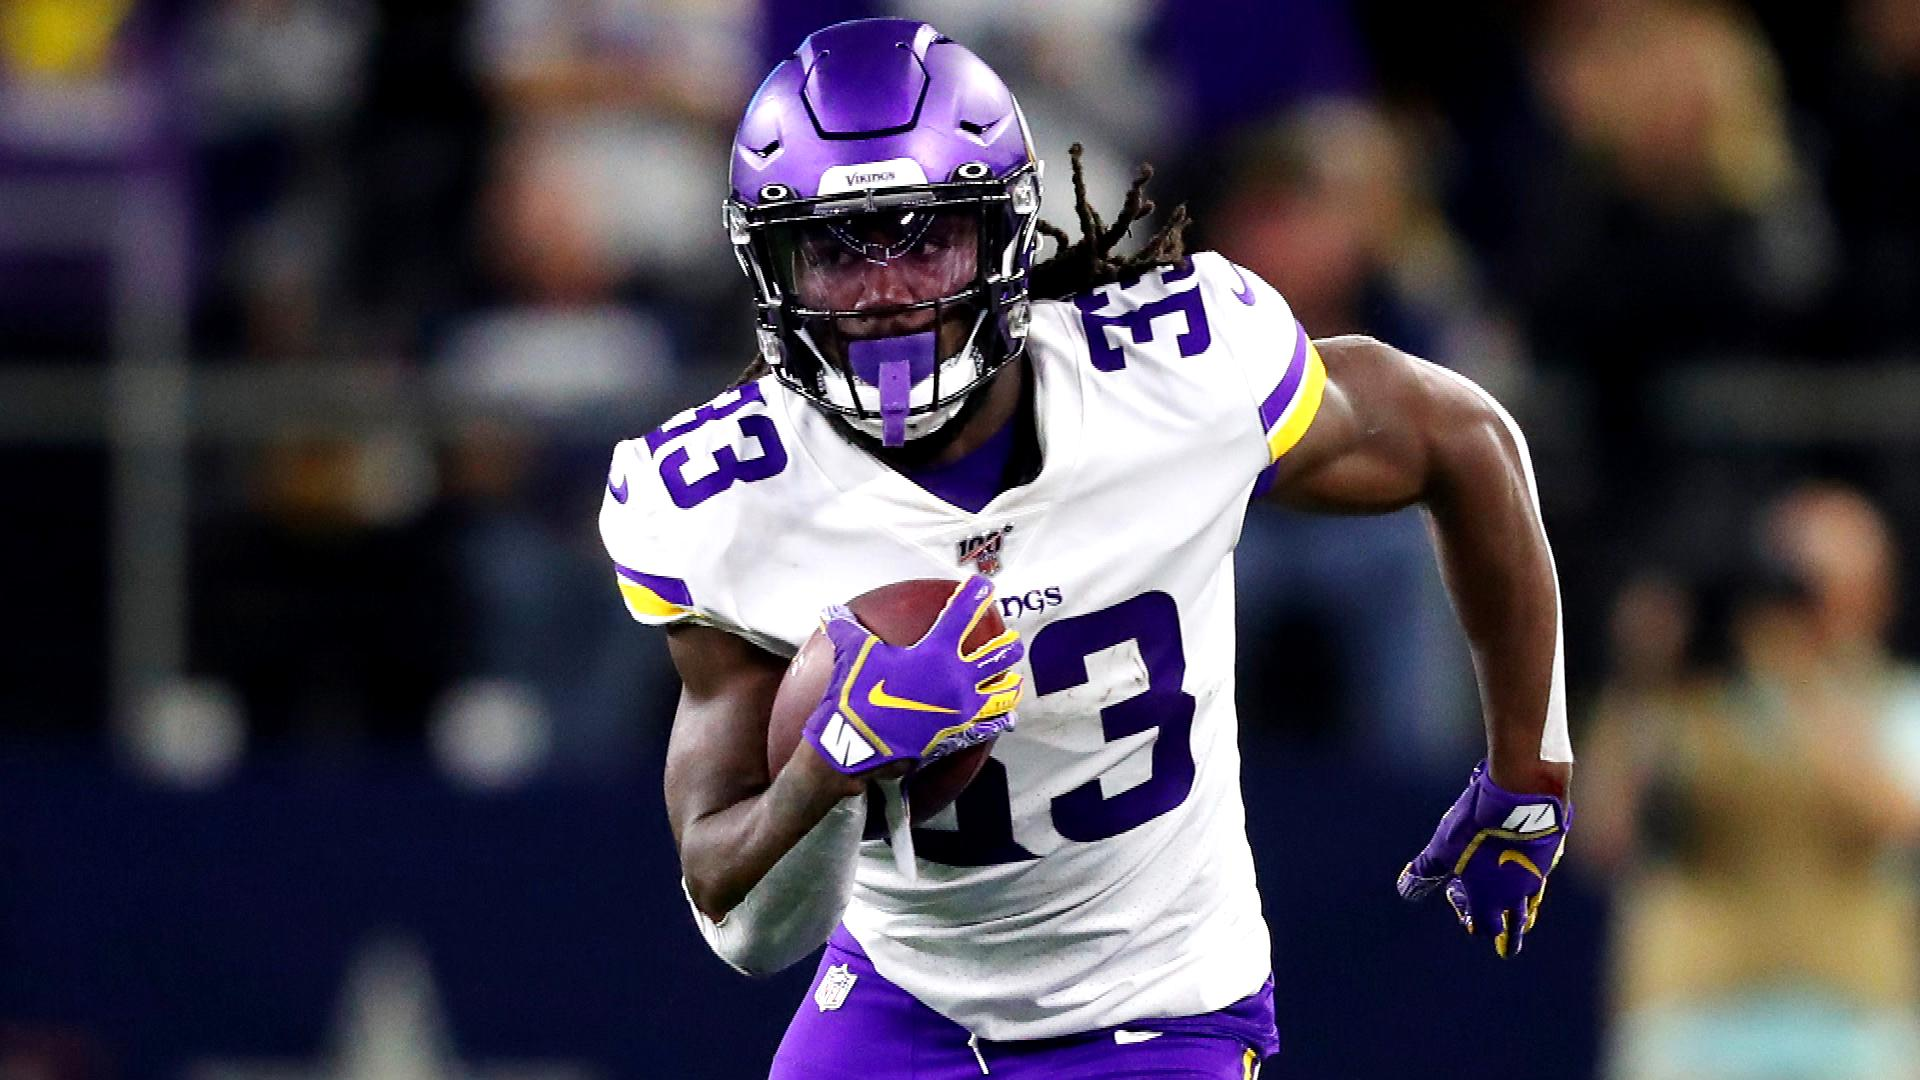 It's not possible for anyone to stop Dalvin Cook, and that is an issue for the NFC